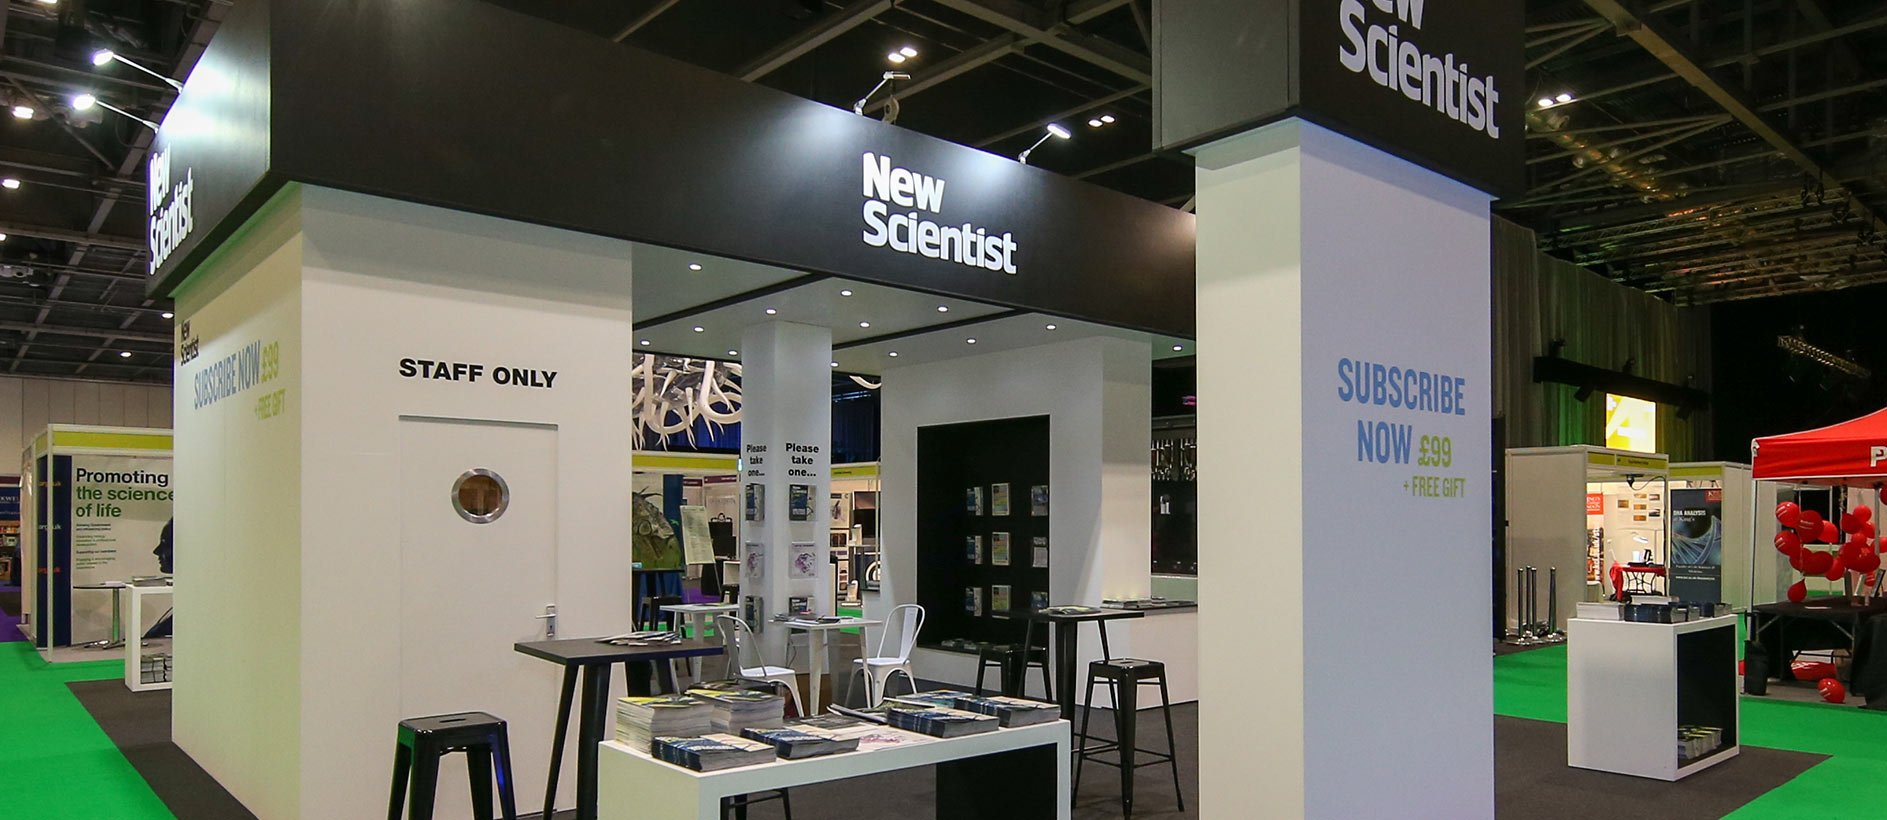 Custom exhibition stand design and build for New Scientist